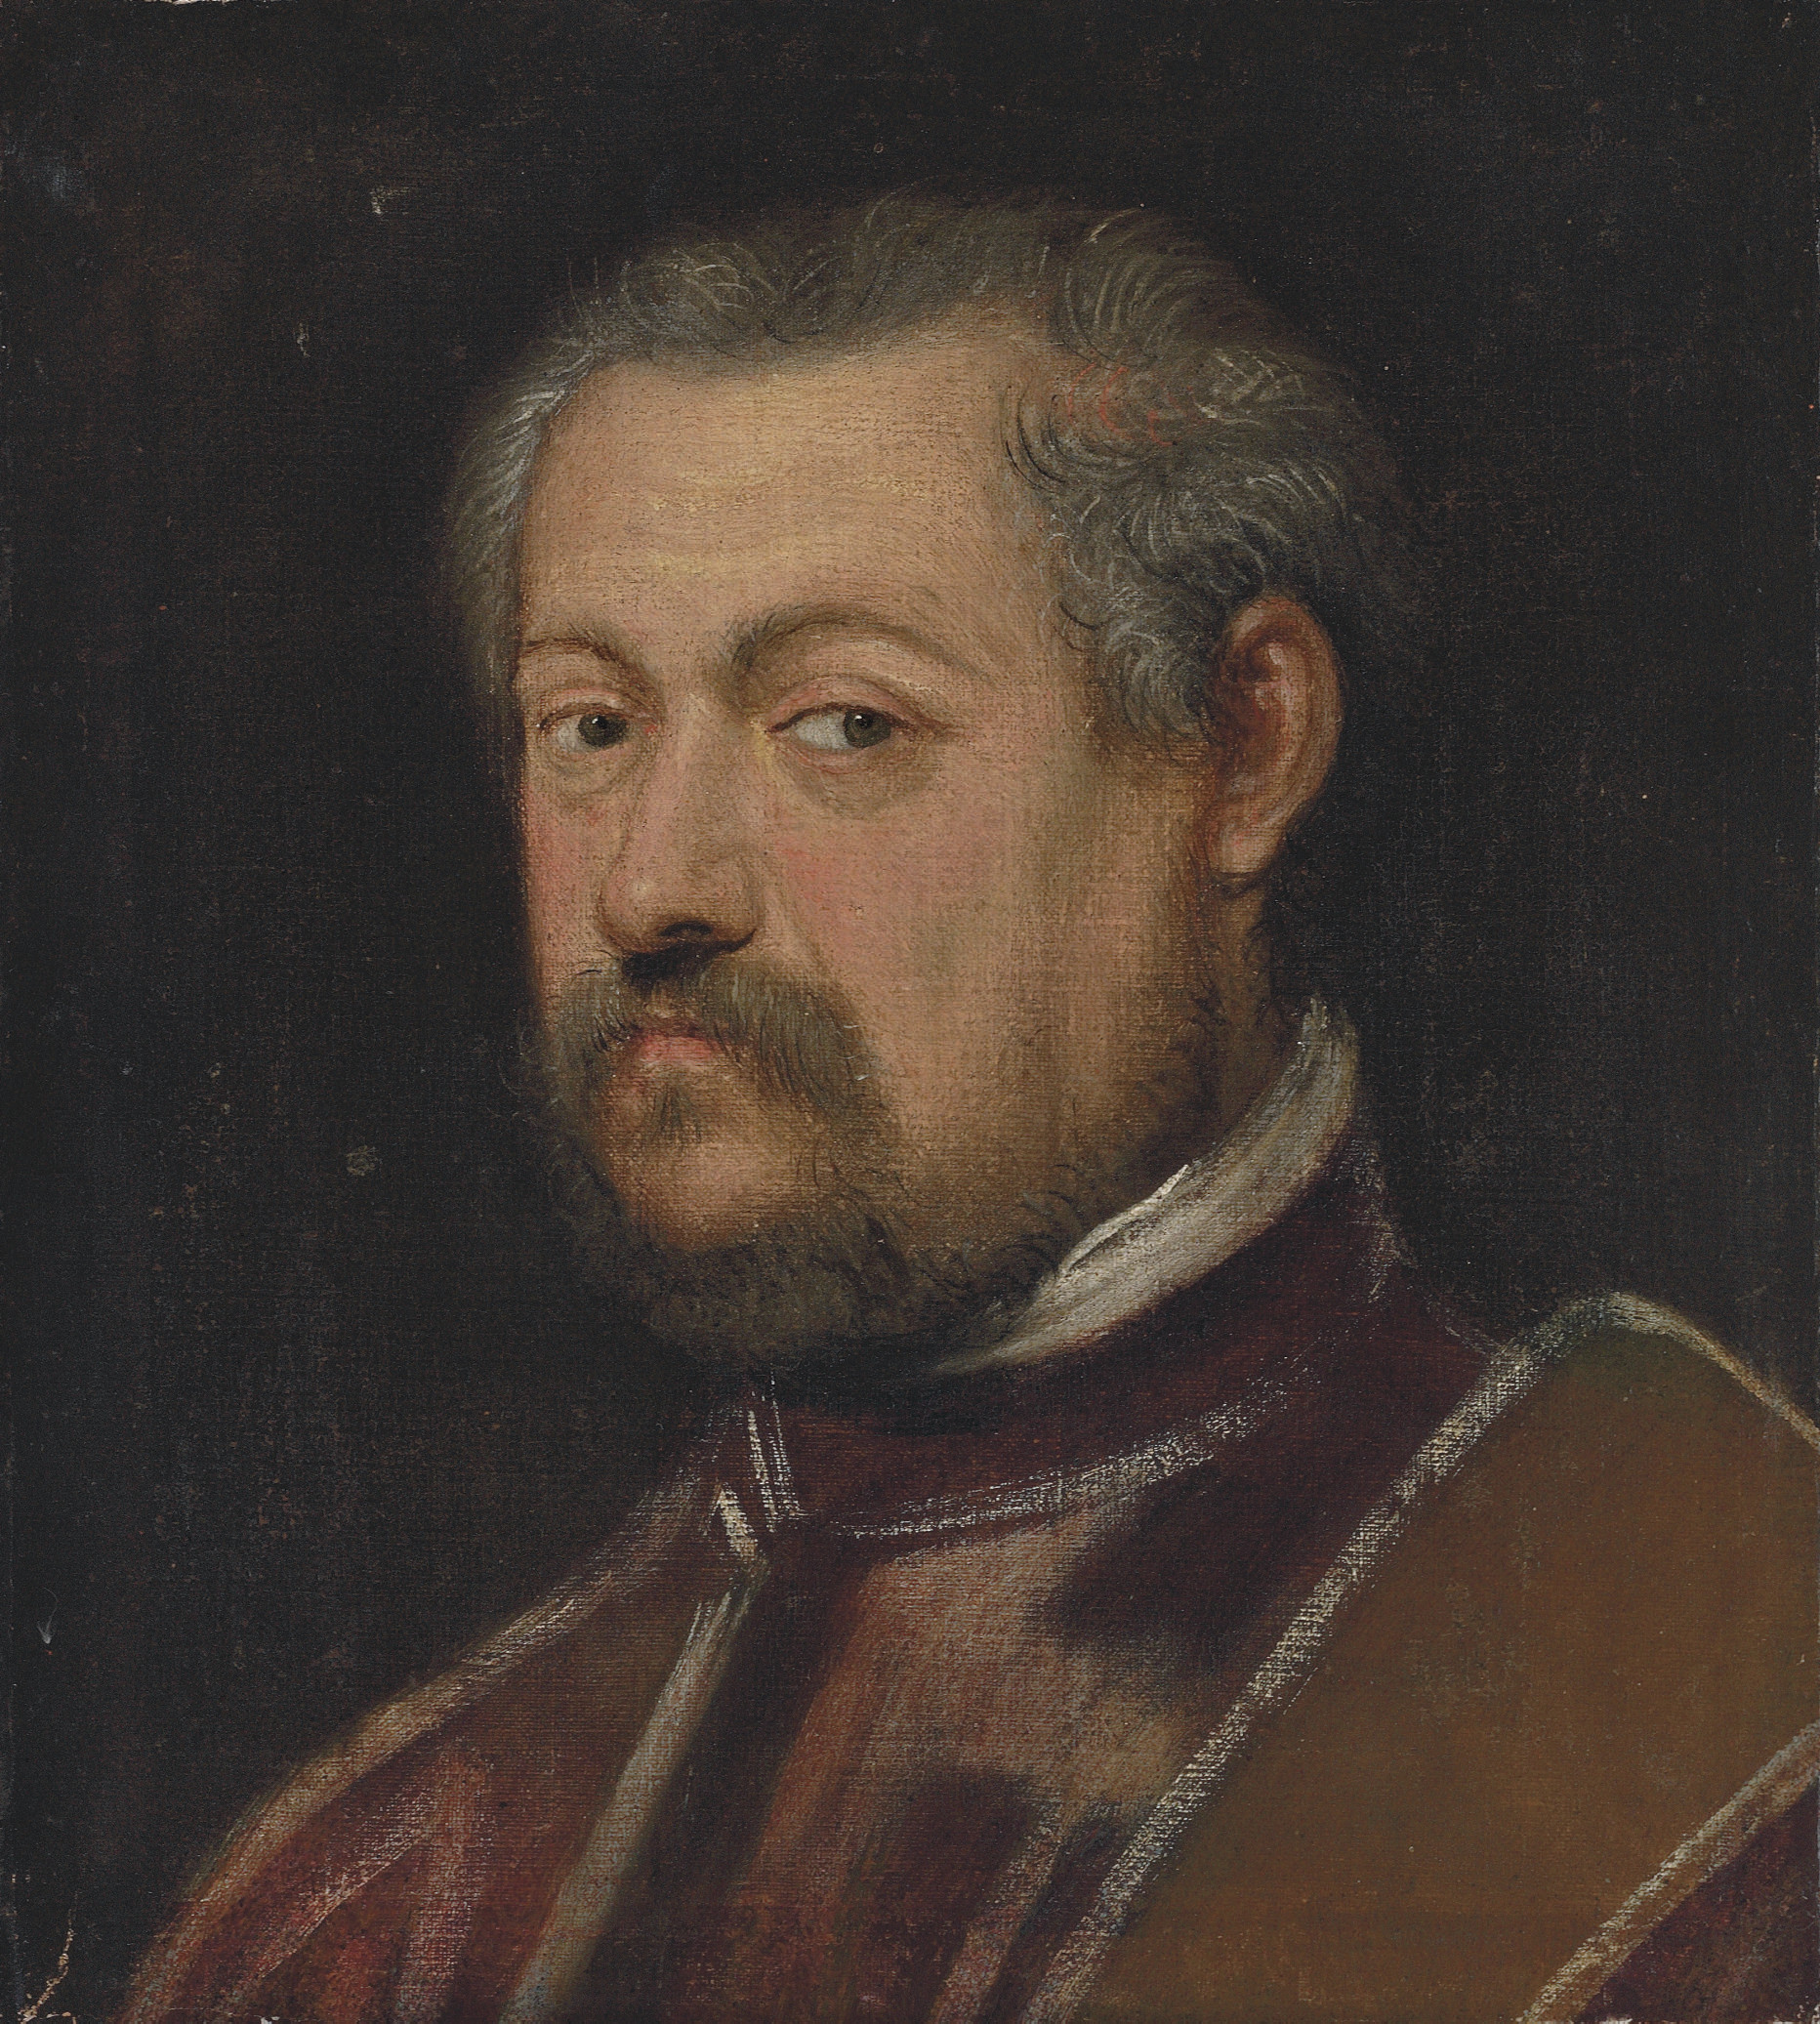 Portrait of a Venetian senator, bust-length